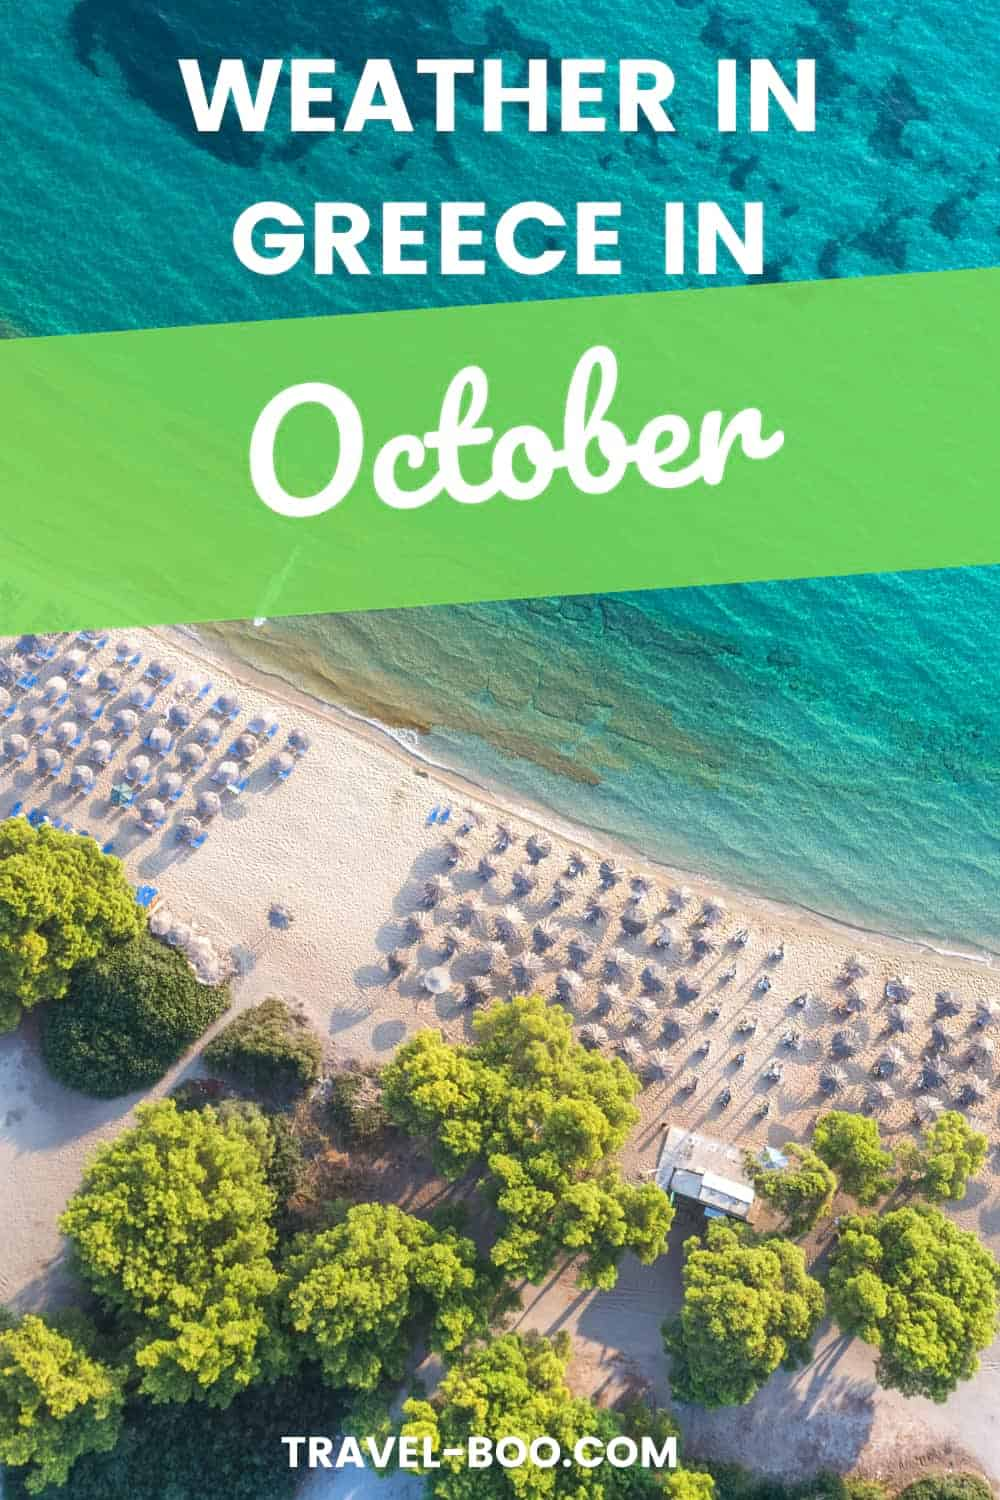 Planning a visit to Greece in October? Read our guide on what to expect from the weather in Greece in October. Greece Travel Islands, Greece Travel, Greece Travel Guide, Santorini Greece, Mykonos Greece, Greece Travel Santorini, Crete Travel, Corfu Travel, Kos Travel, Athens Travel Guide. #greecetravel #greecevacation #greecetravelislands